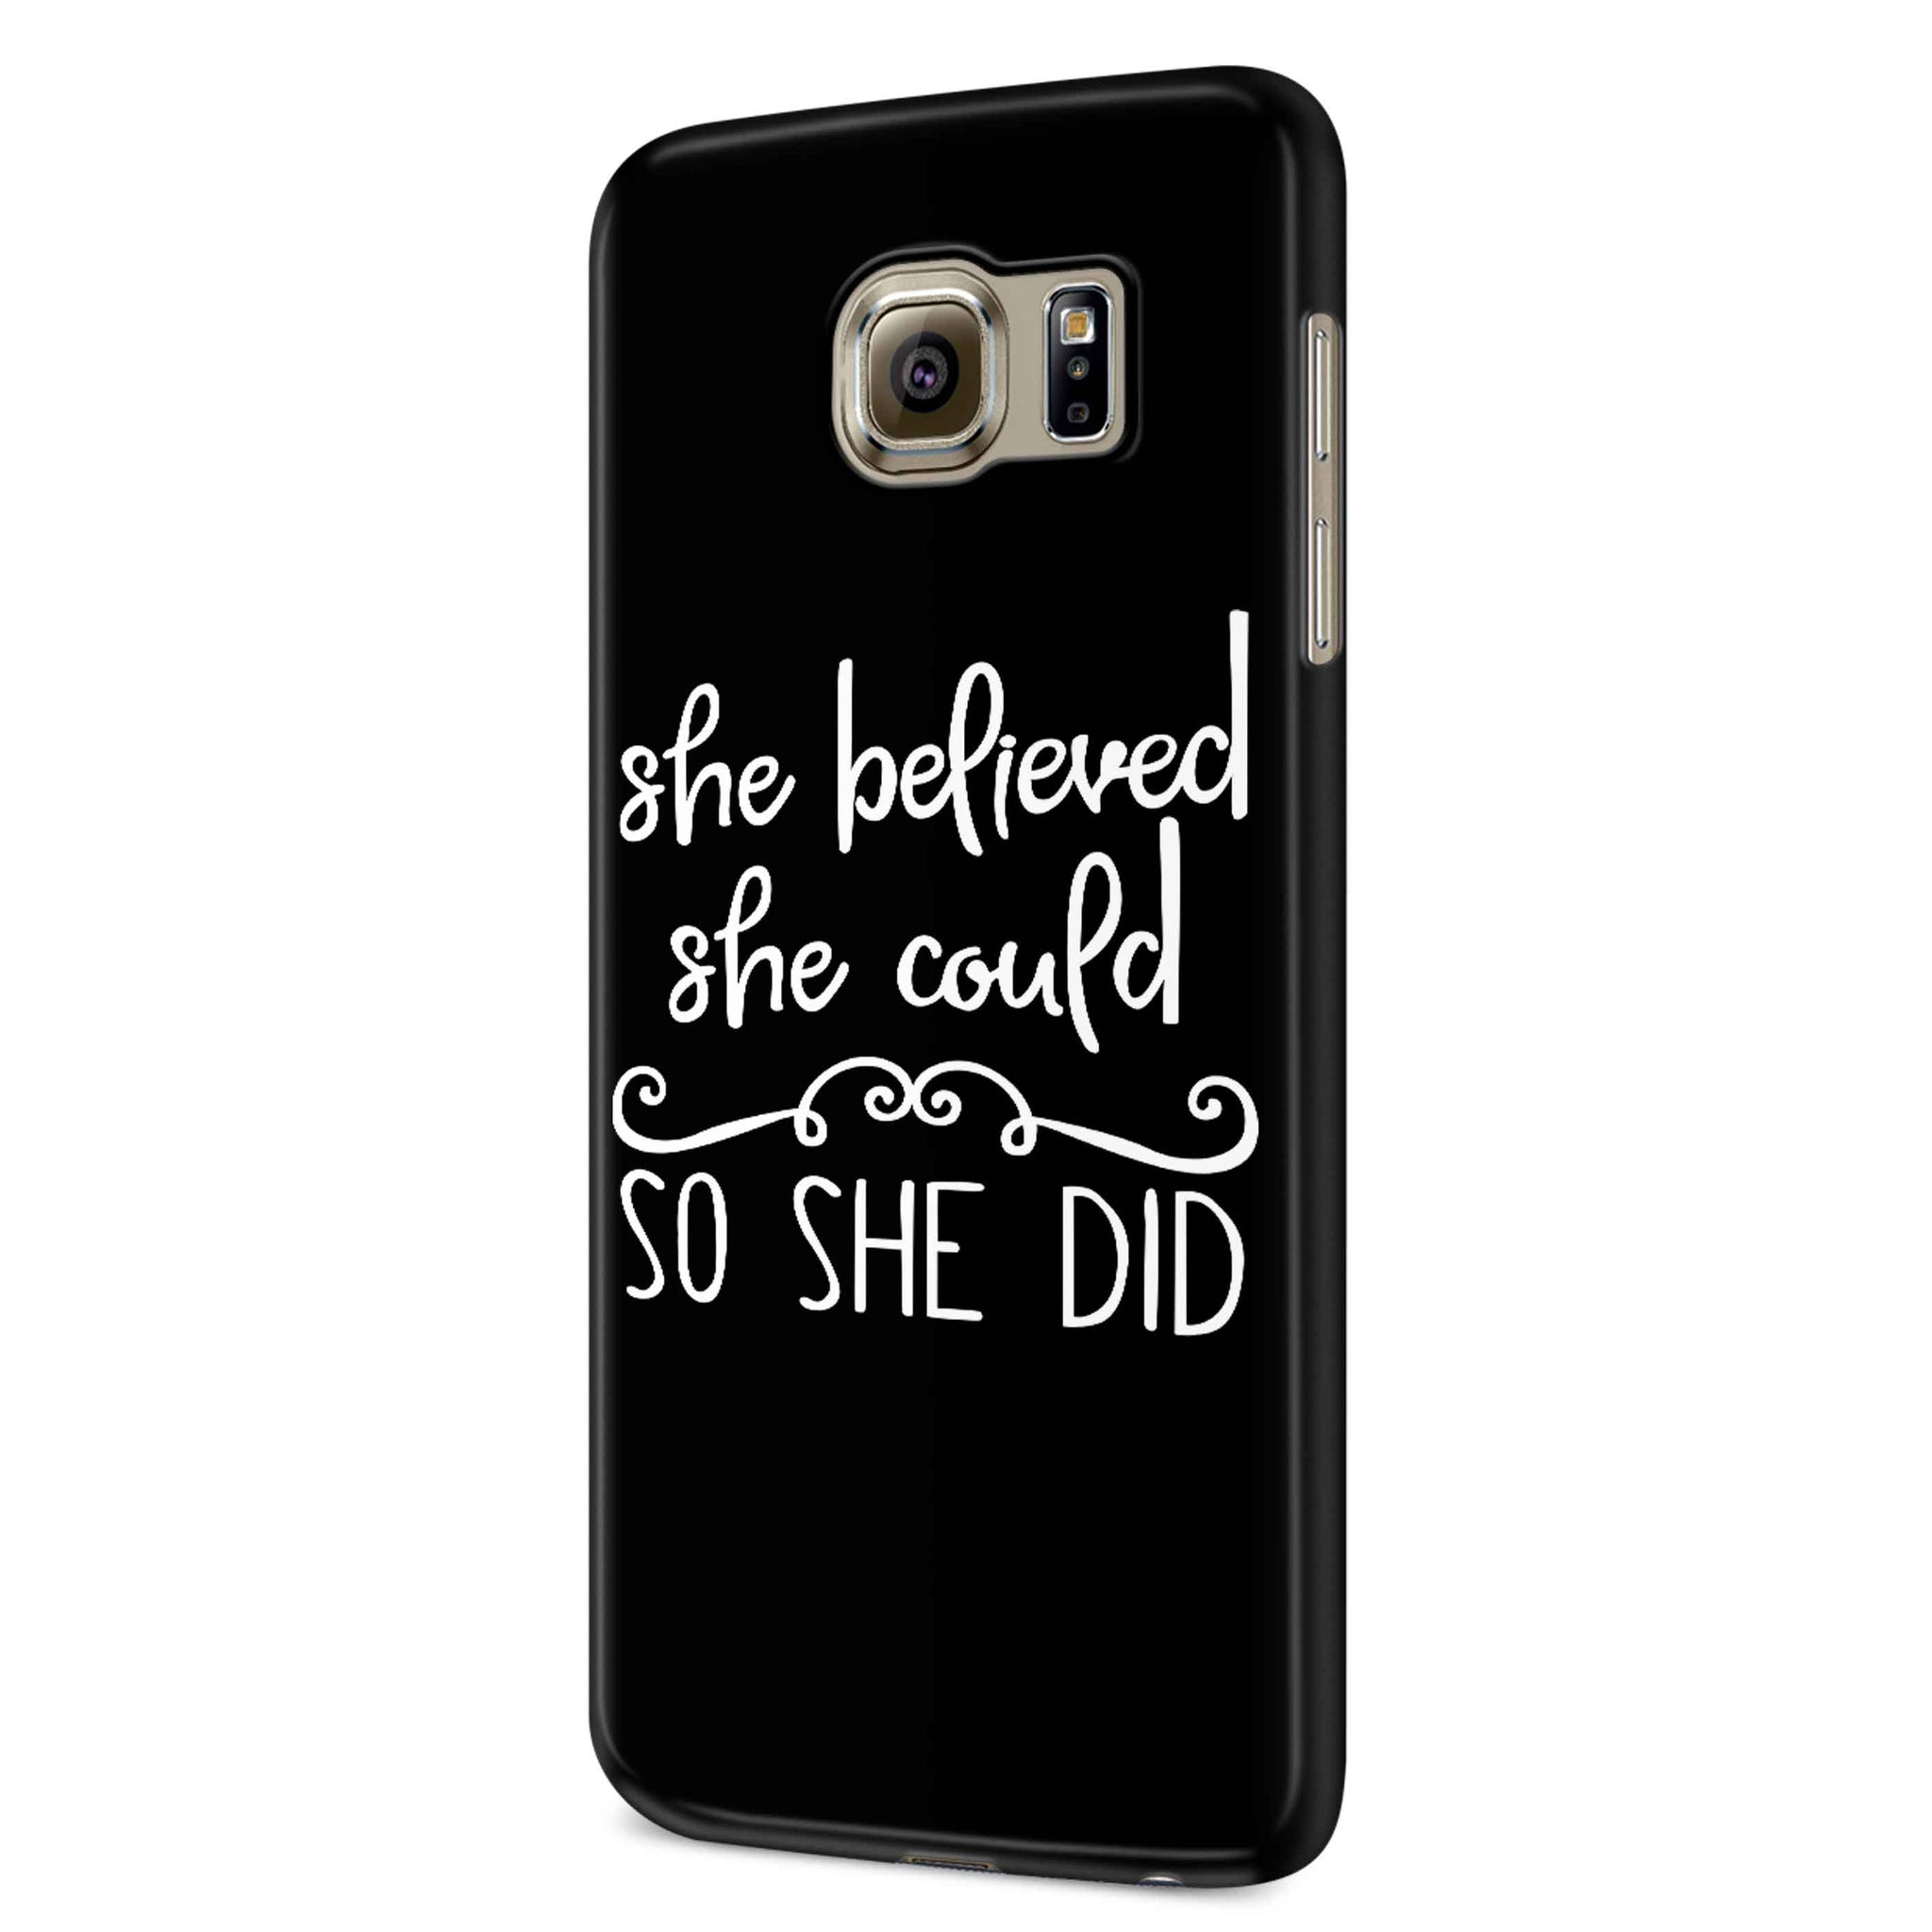 She Believed She Could So She Did Christian Inspirational Samsung Galaxy S6 S6 Edge Plus/ S7 S7 Edge / S8 S8 Plus / S9 S9 plus 3D Case